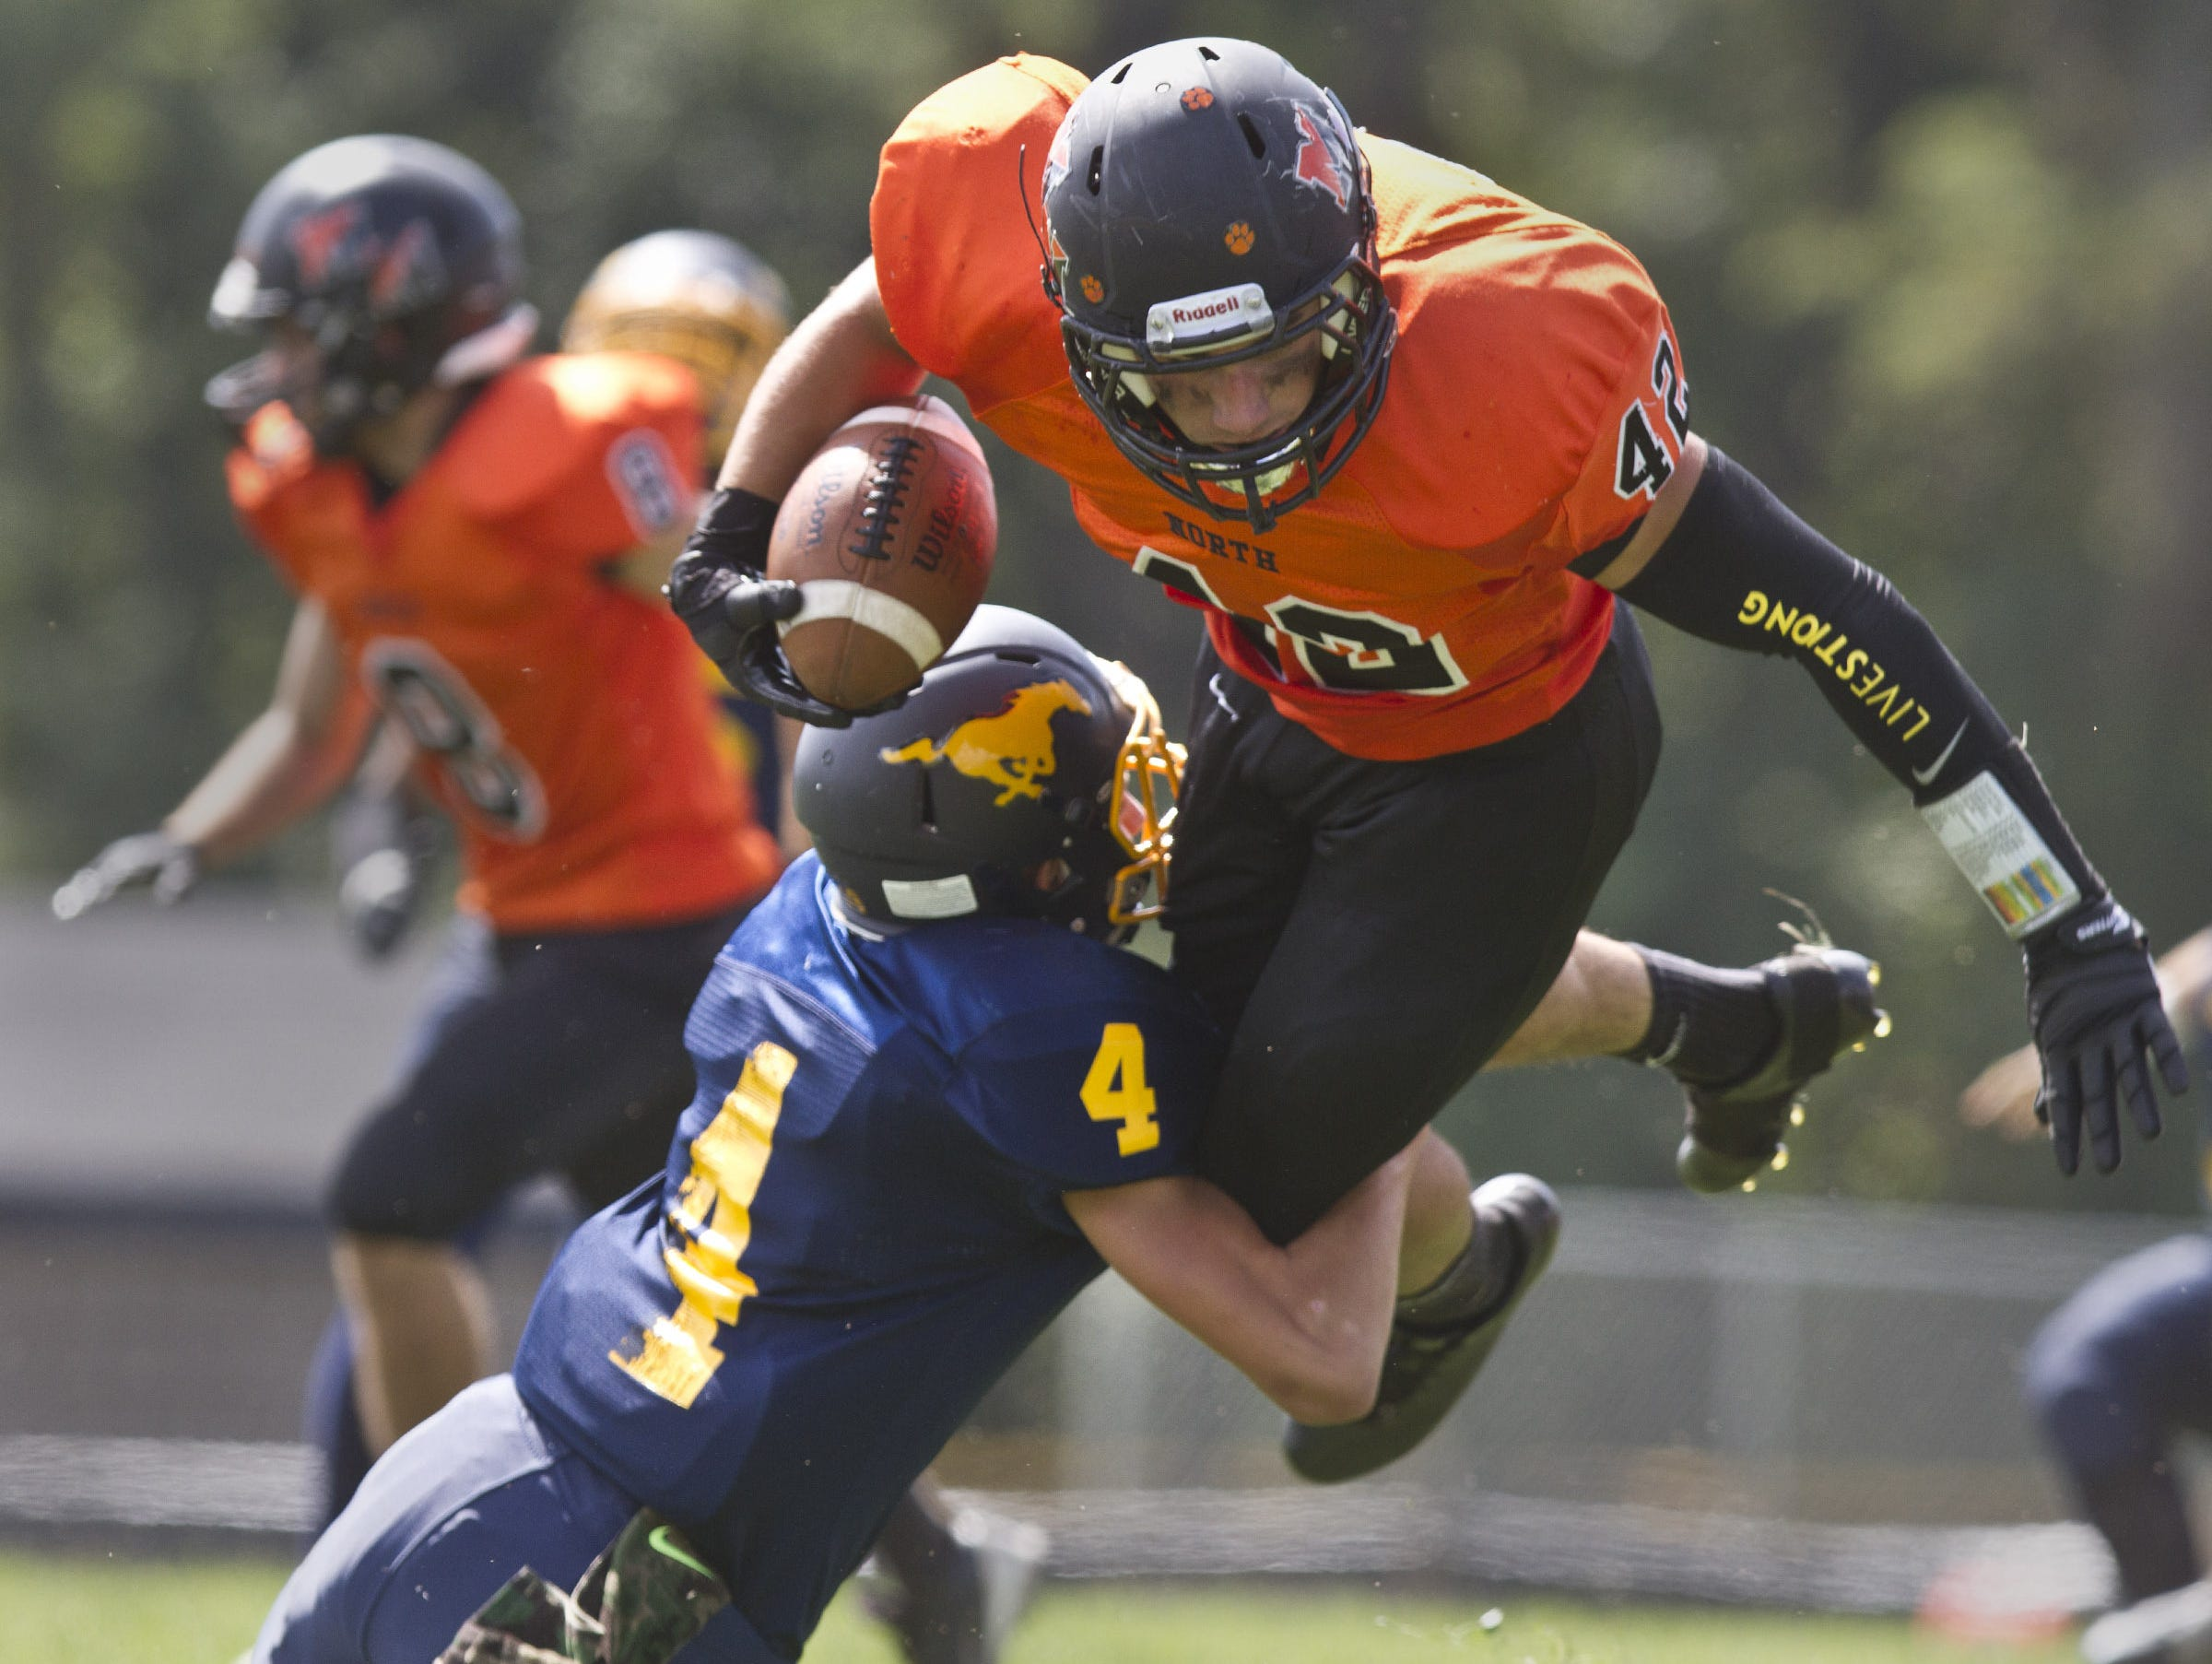 Middletown North, led by senior running back/linebacker Chad Freshnock, shown hurdling over a Marlboro defender on Sept. 19, will try to set up the prospect of playing Middletown South two weeks in a row with a win over Sayreville Friday night in an NJSIAA North II, Group IV quarterfinal-round game.